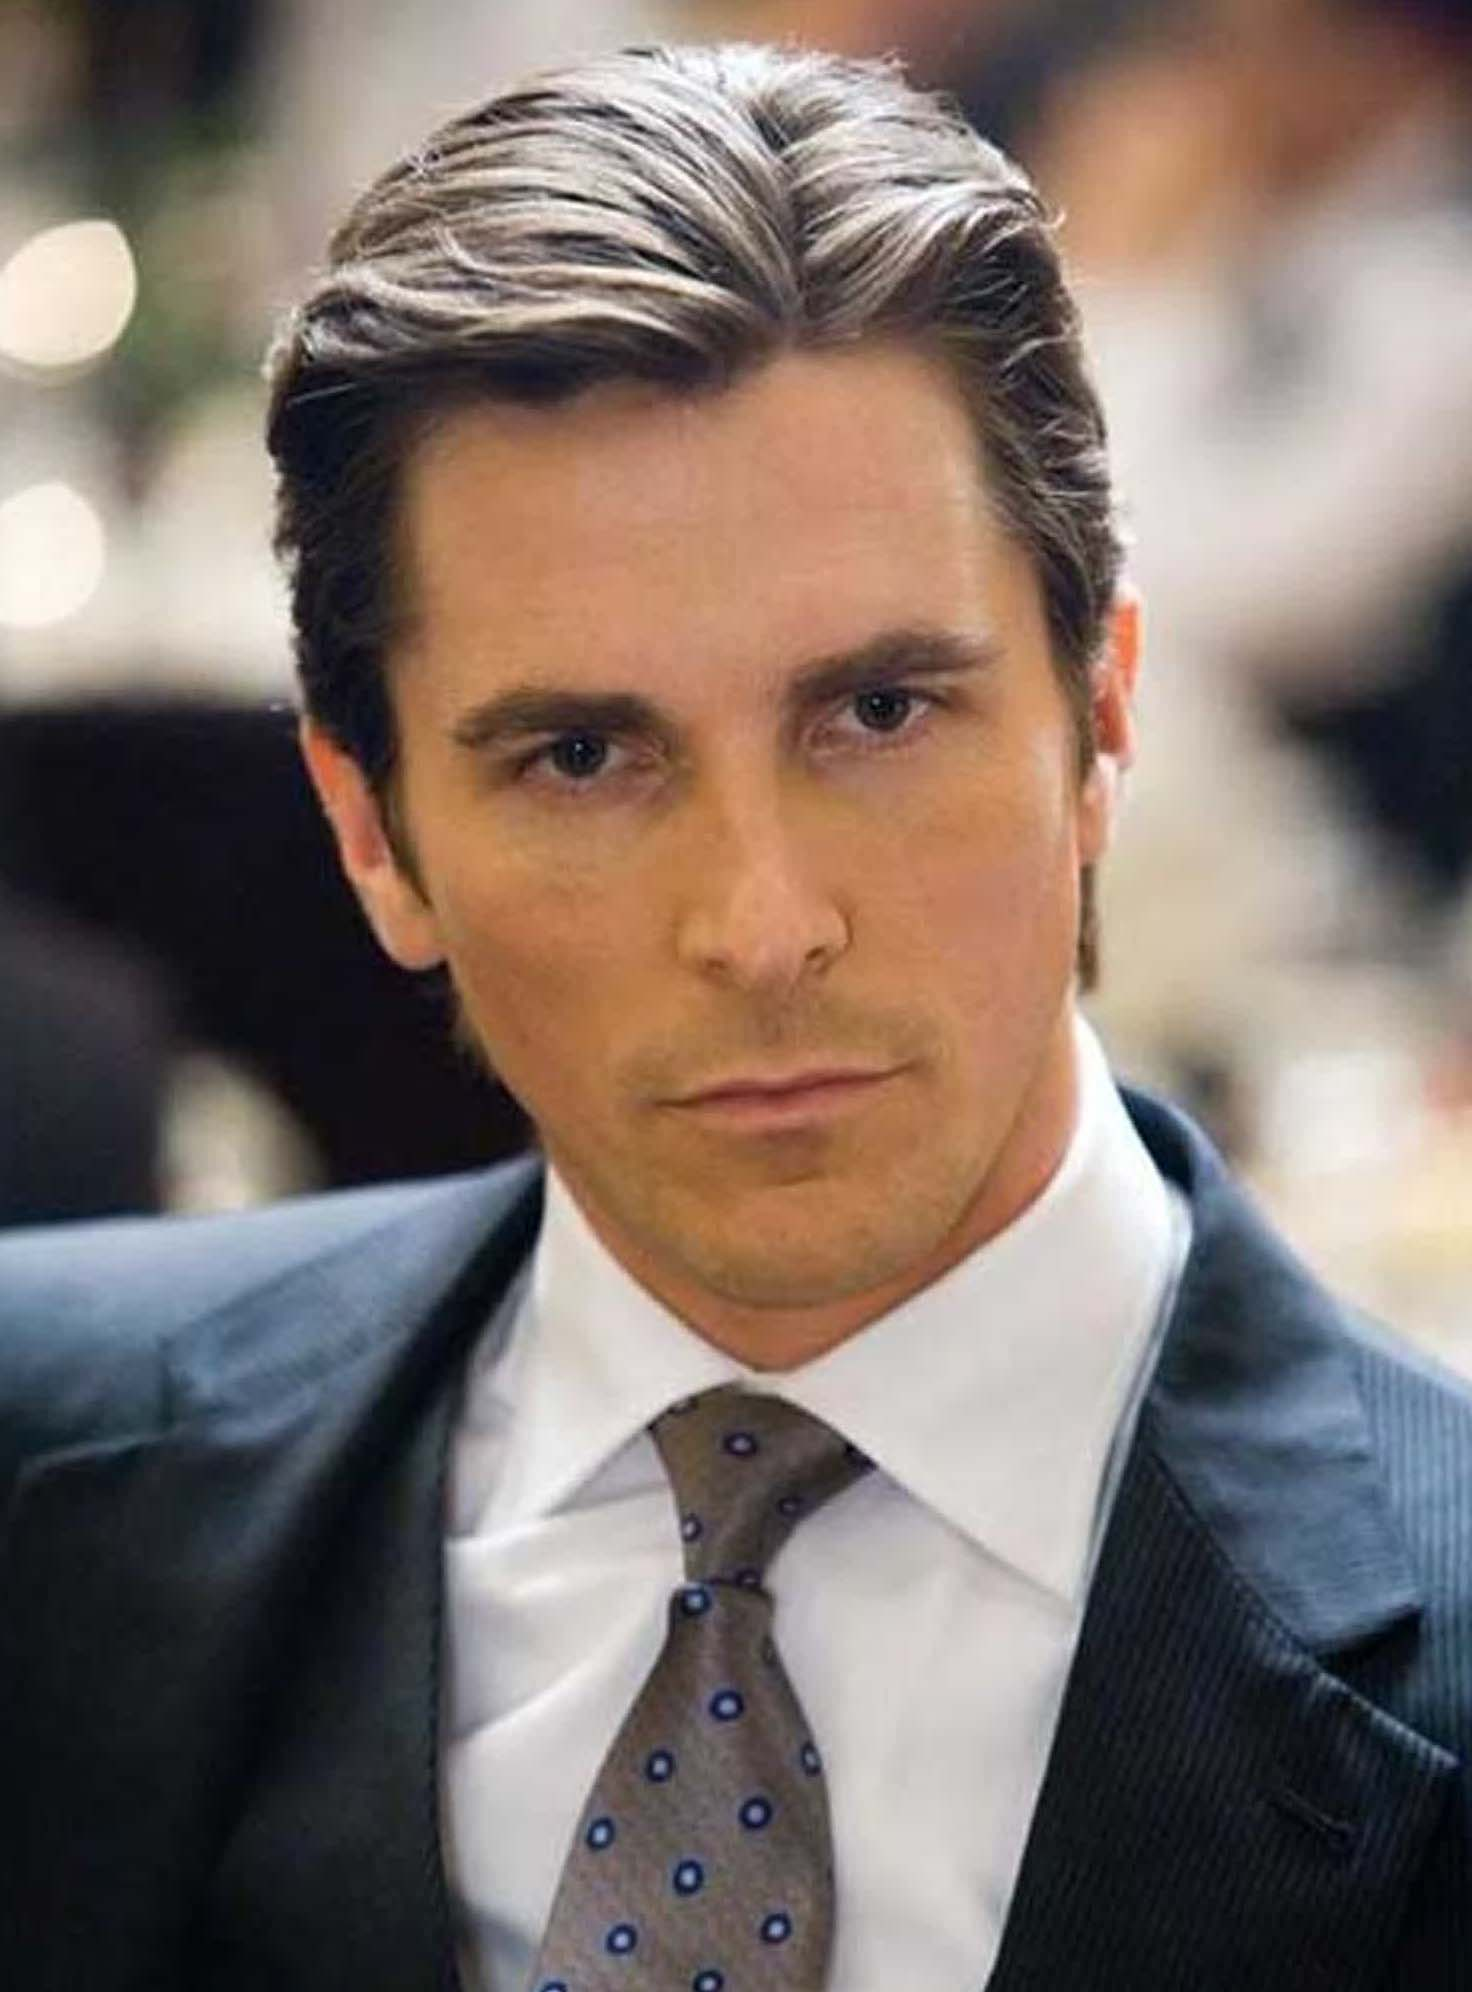 Christian Bale Haircut 2018